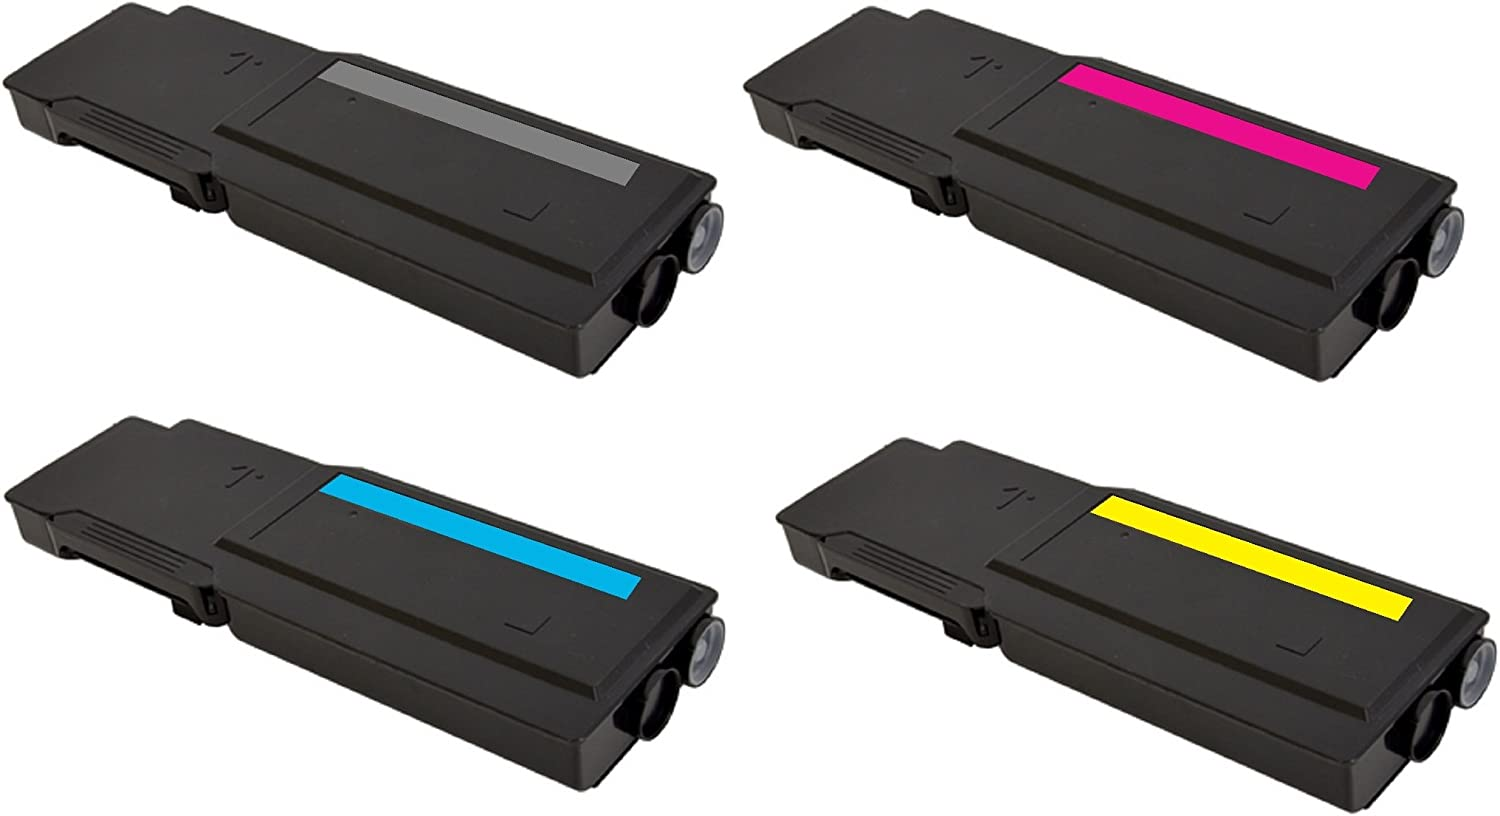 106R02243 WorkCentre 6605 4 Color Toner Set 106R02225 106R02226 106R02227 106R02228 106R02244 106R02241 Pegasus Compatible Replacement for Xerox Phaser 6600 106R02242